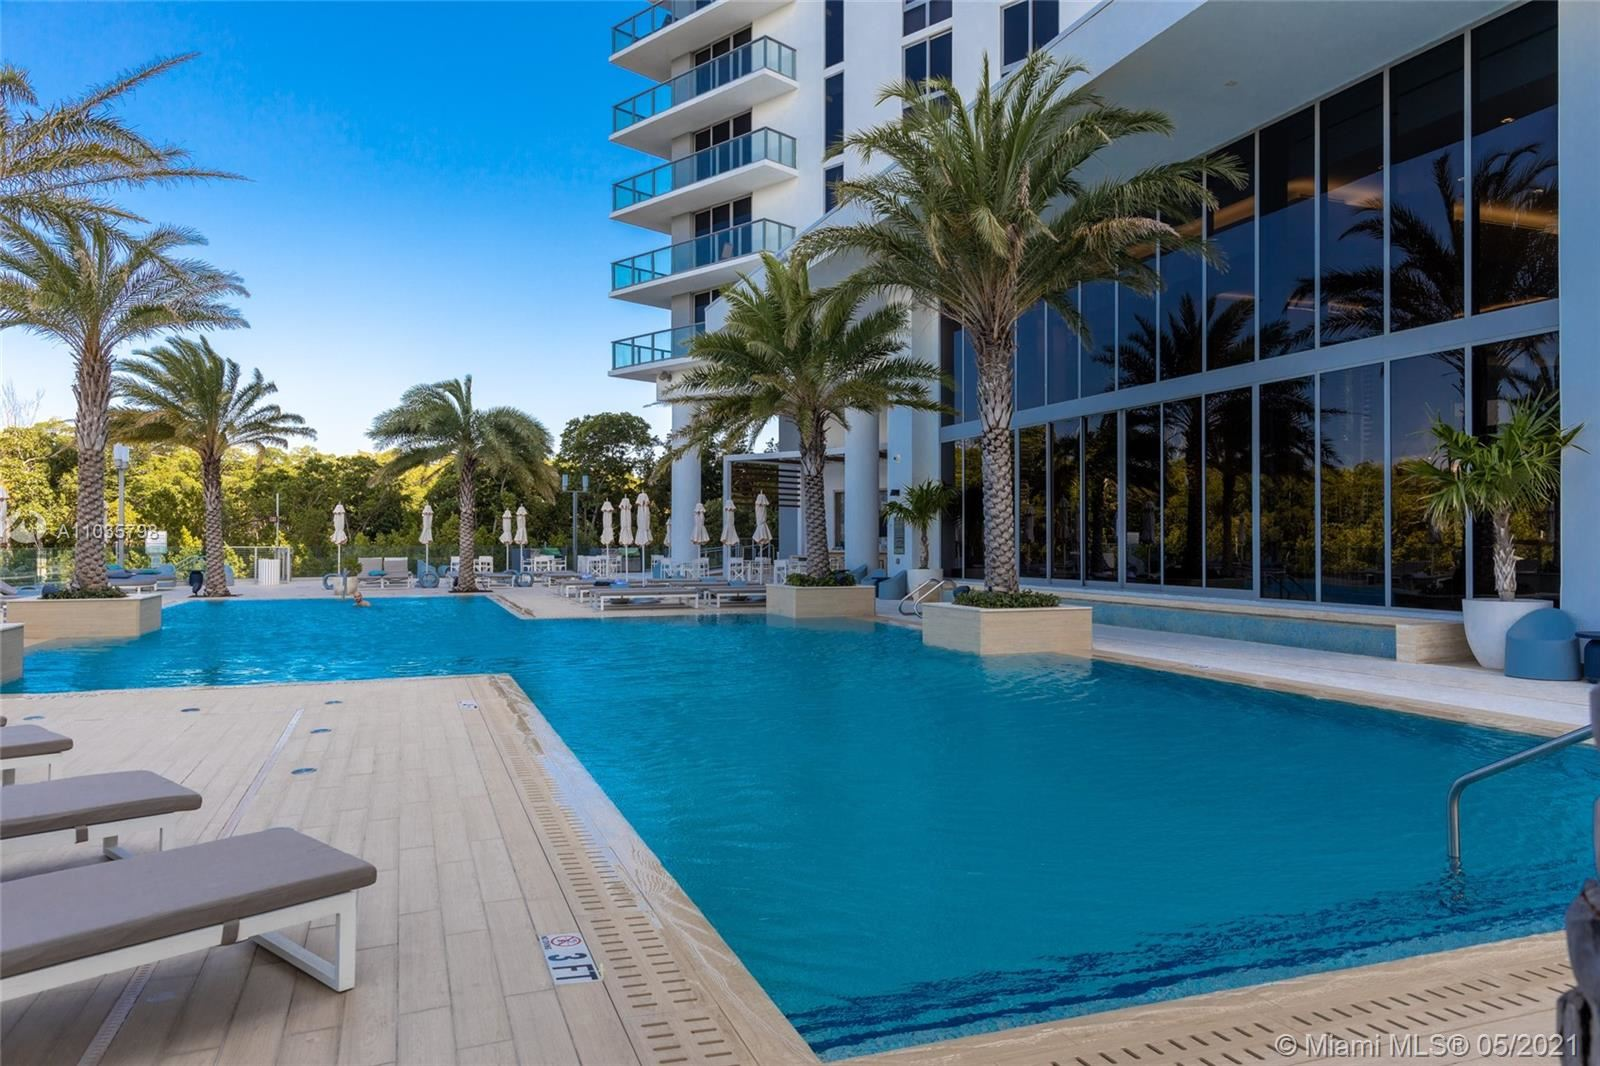 16385 Biscayne Blvd #3218, North Miami Beach, FL 33160 - #: A11035798